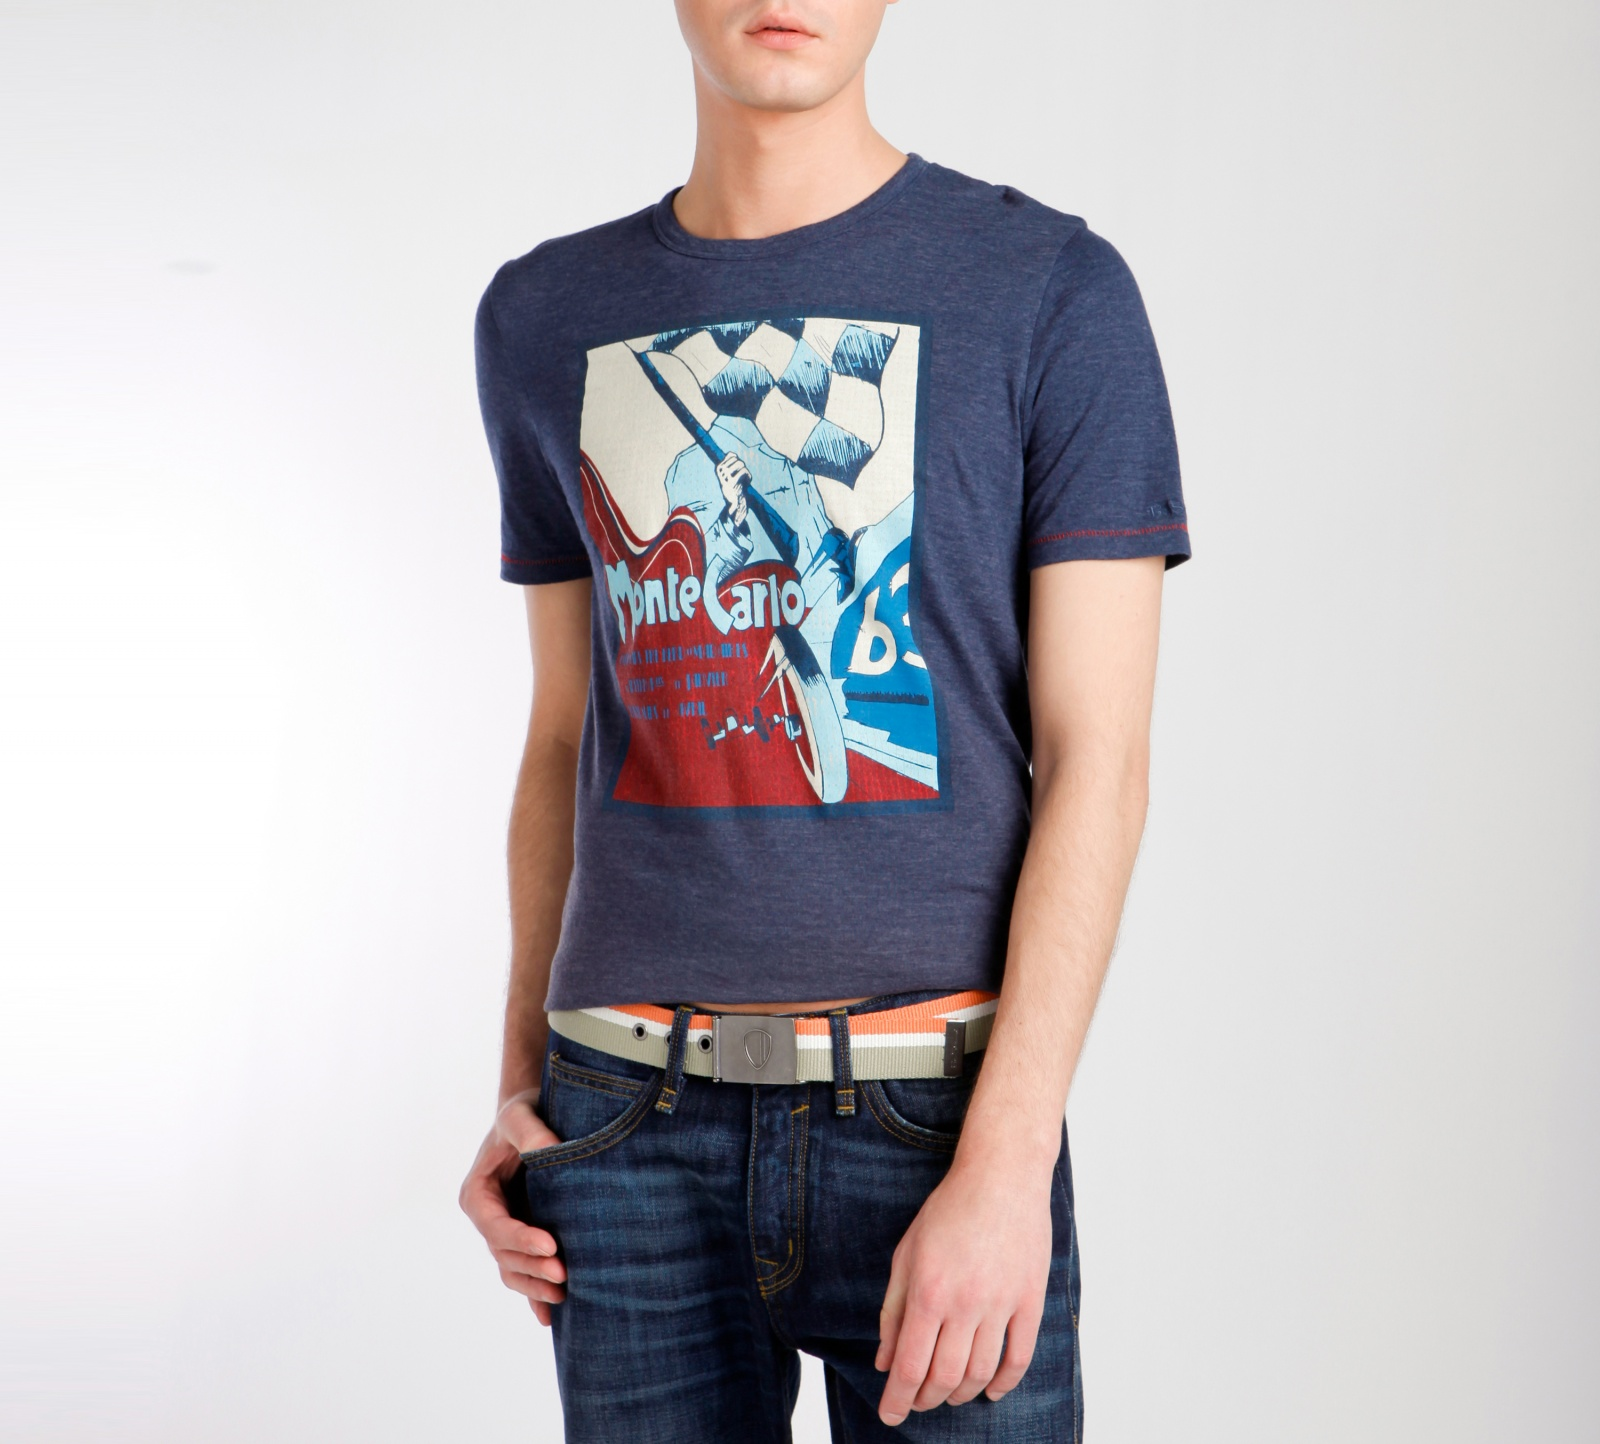 80s clothing styles for